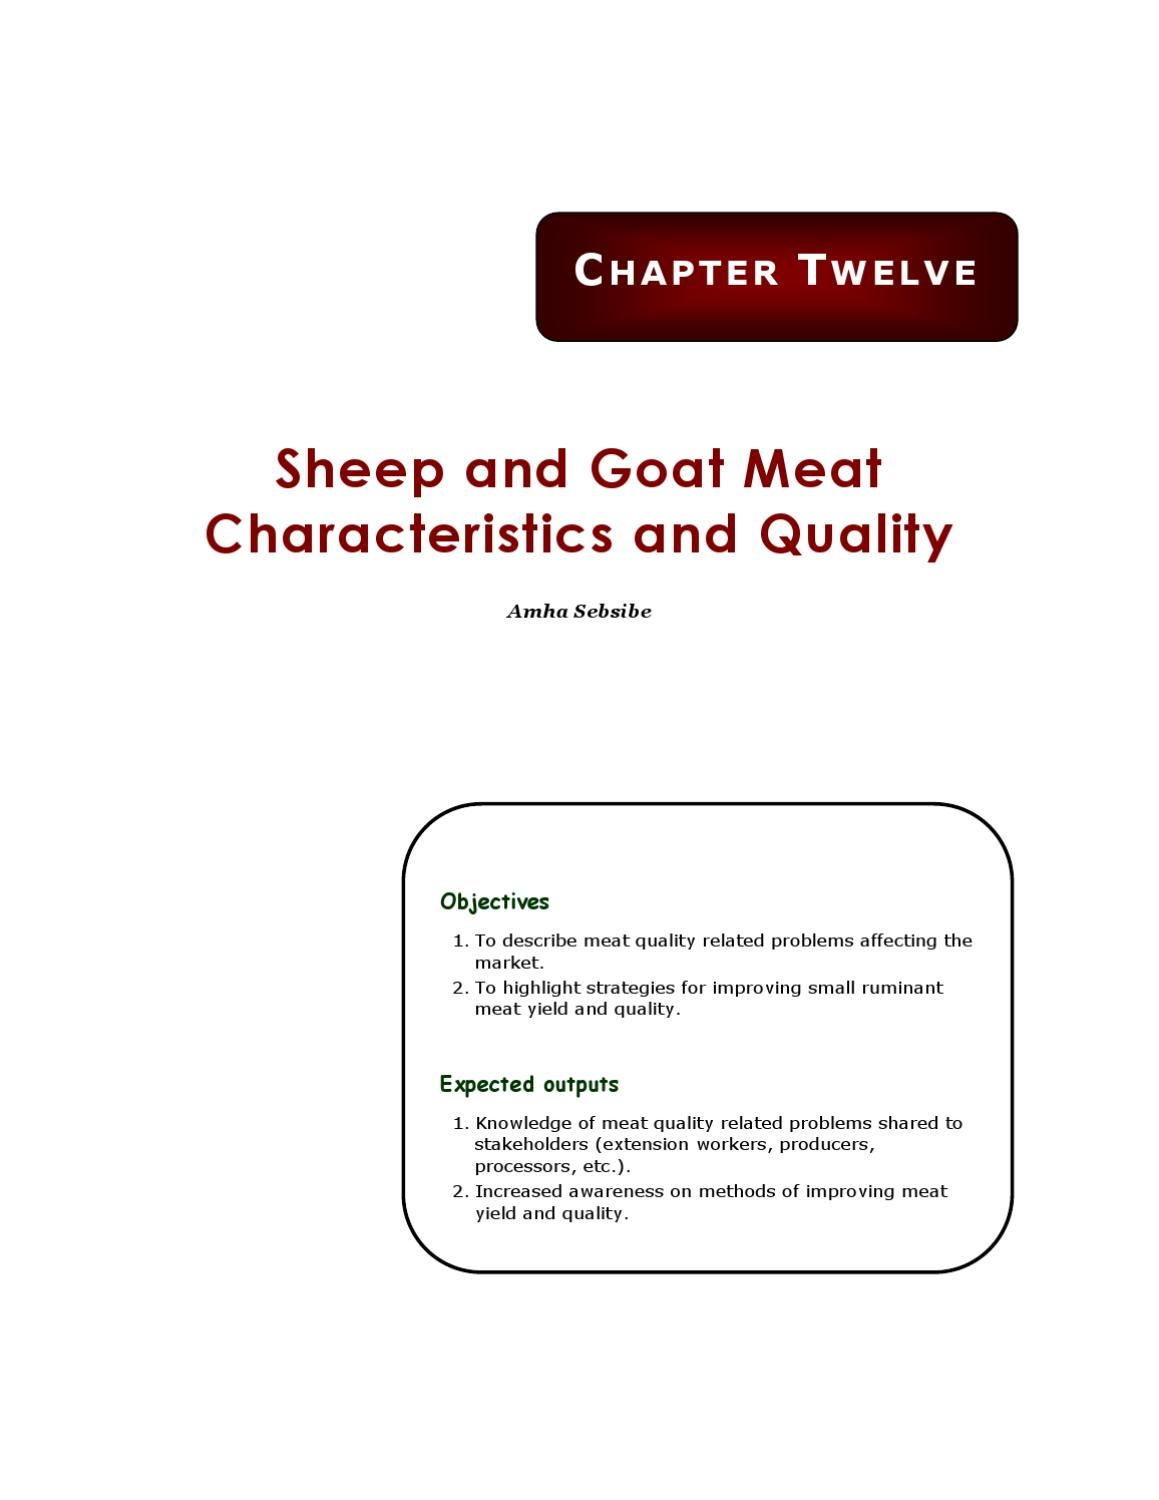 Sheep and goat meat characteristics and quality by Roger